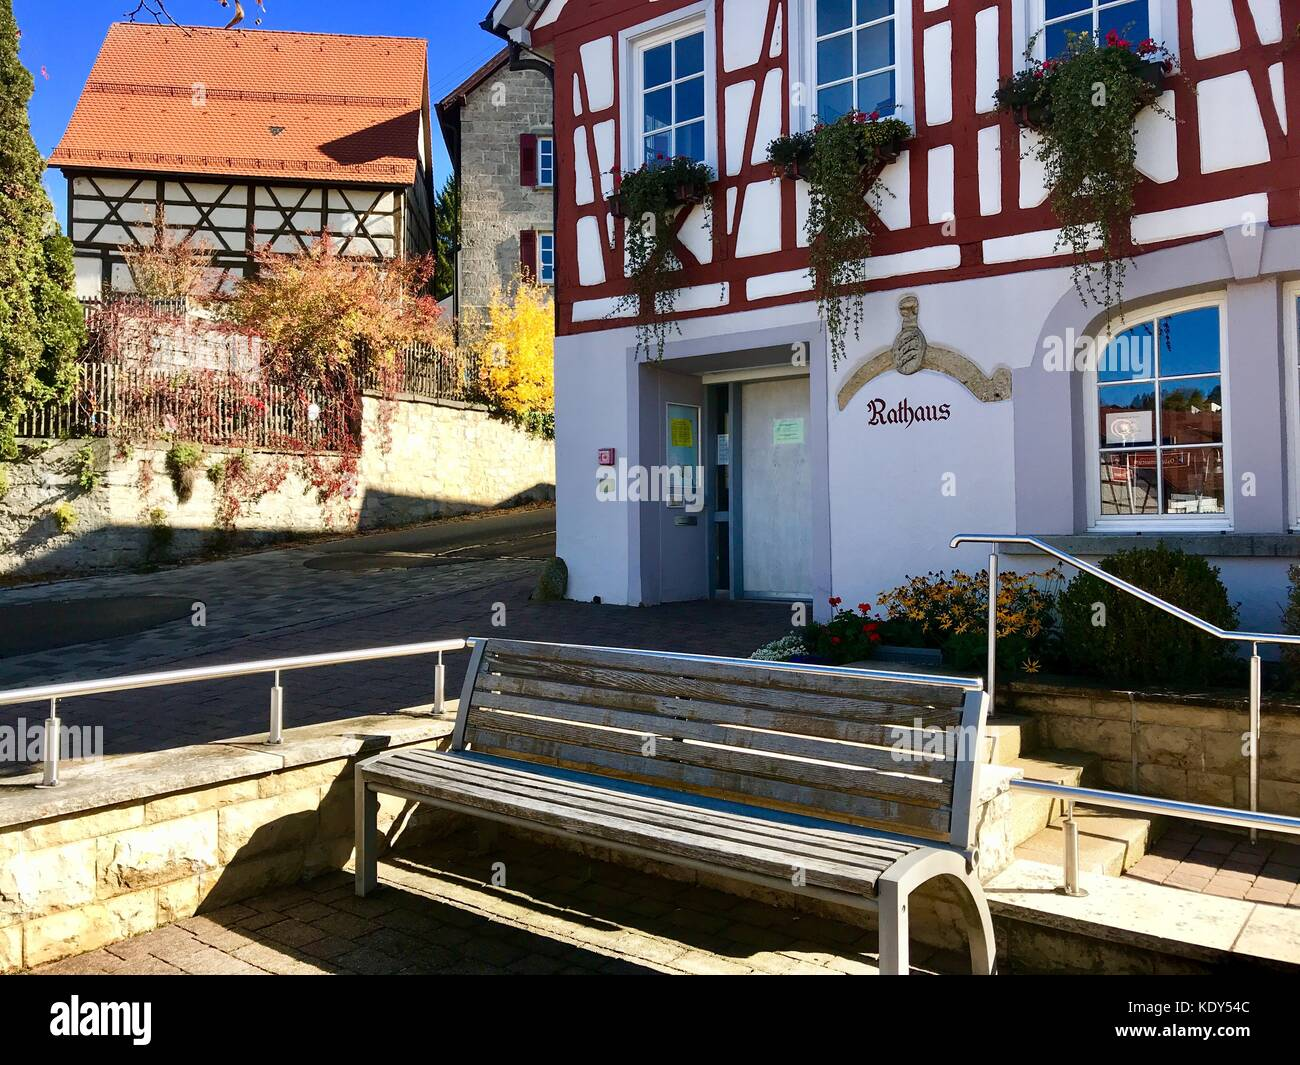 Townhall of Erpfingen in the Swabian Alb, Germany - Stock Image